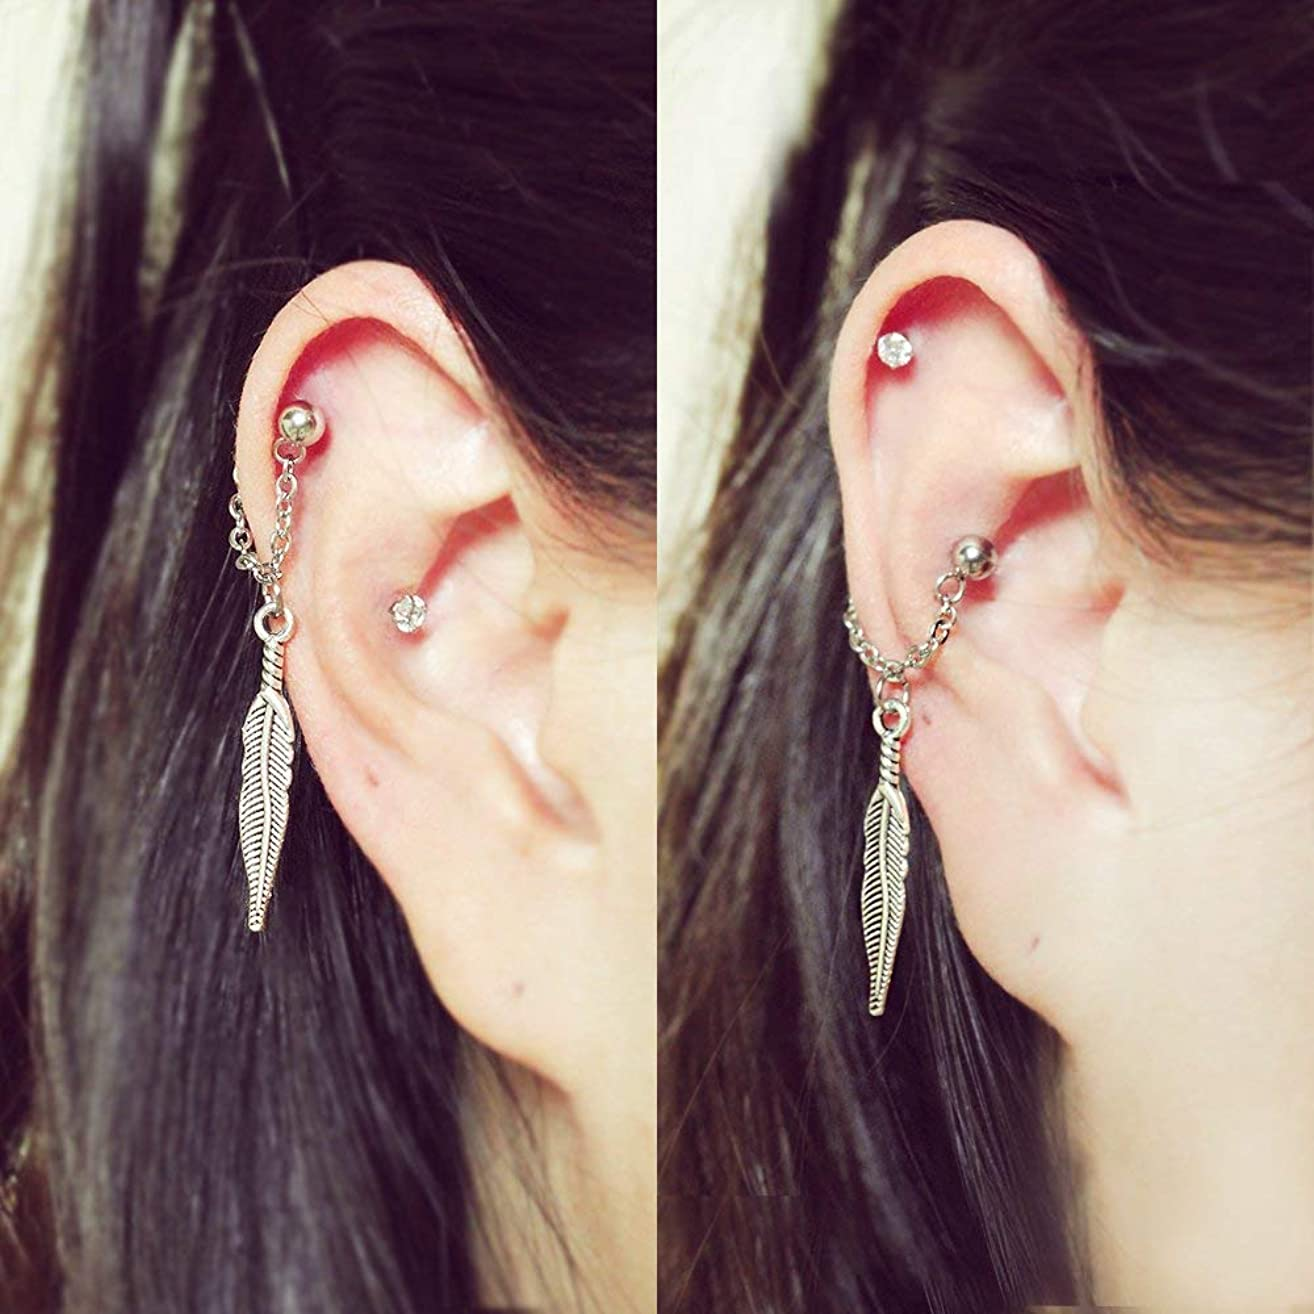 Feather conch chain earring, conch hoop earring, helix earring, ear cartilage chain dangle earring jewelry, 304 Stainless Steel, Sold individually